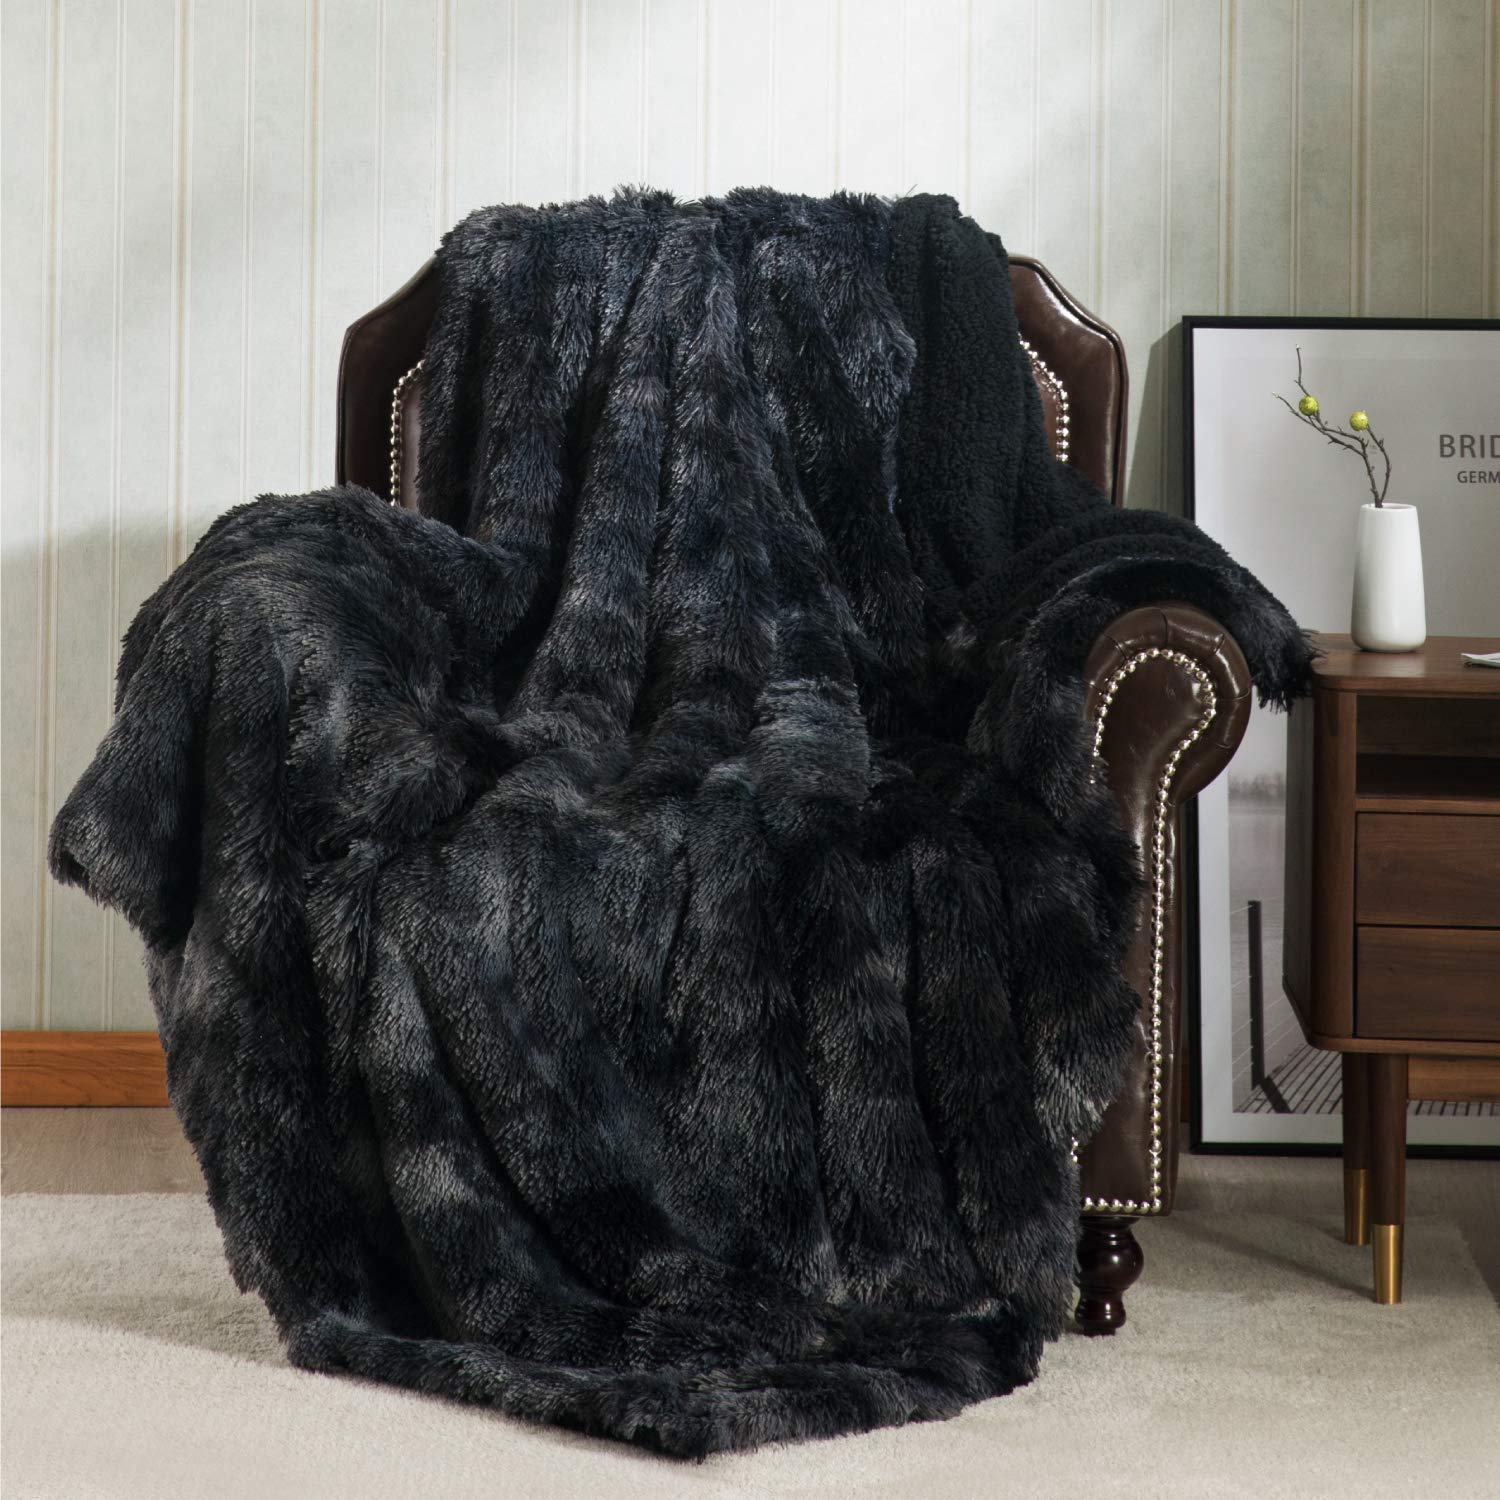 Bedsure Faux Fur Reversible Tie-dye Sherpa Throw Blanket for Sofa, Couch and Bed - Super Soft Fuzzy Fleece Blanket for Outdoor, Indoor, Camping, Gifts (60x80 inches, Black)